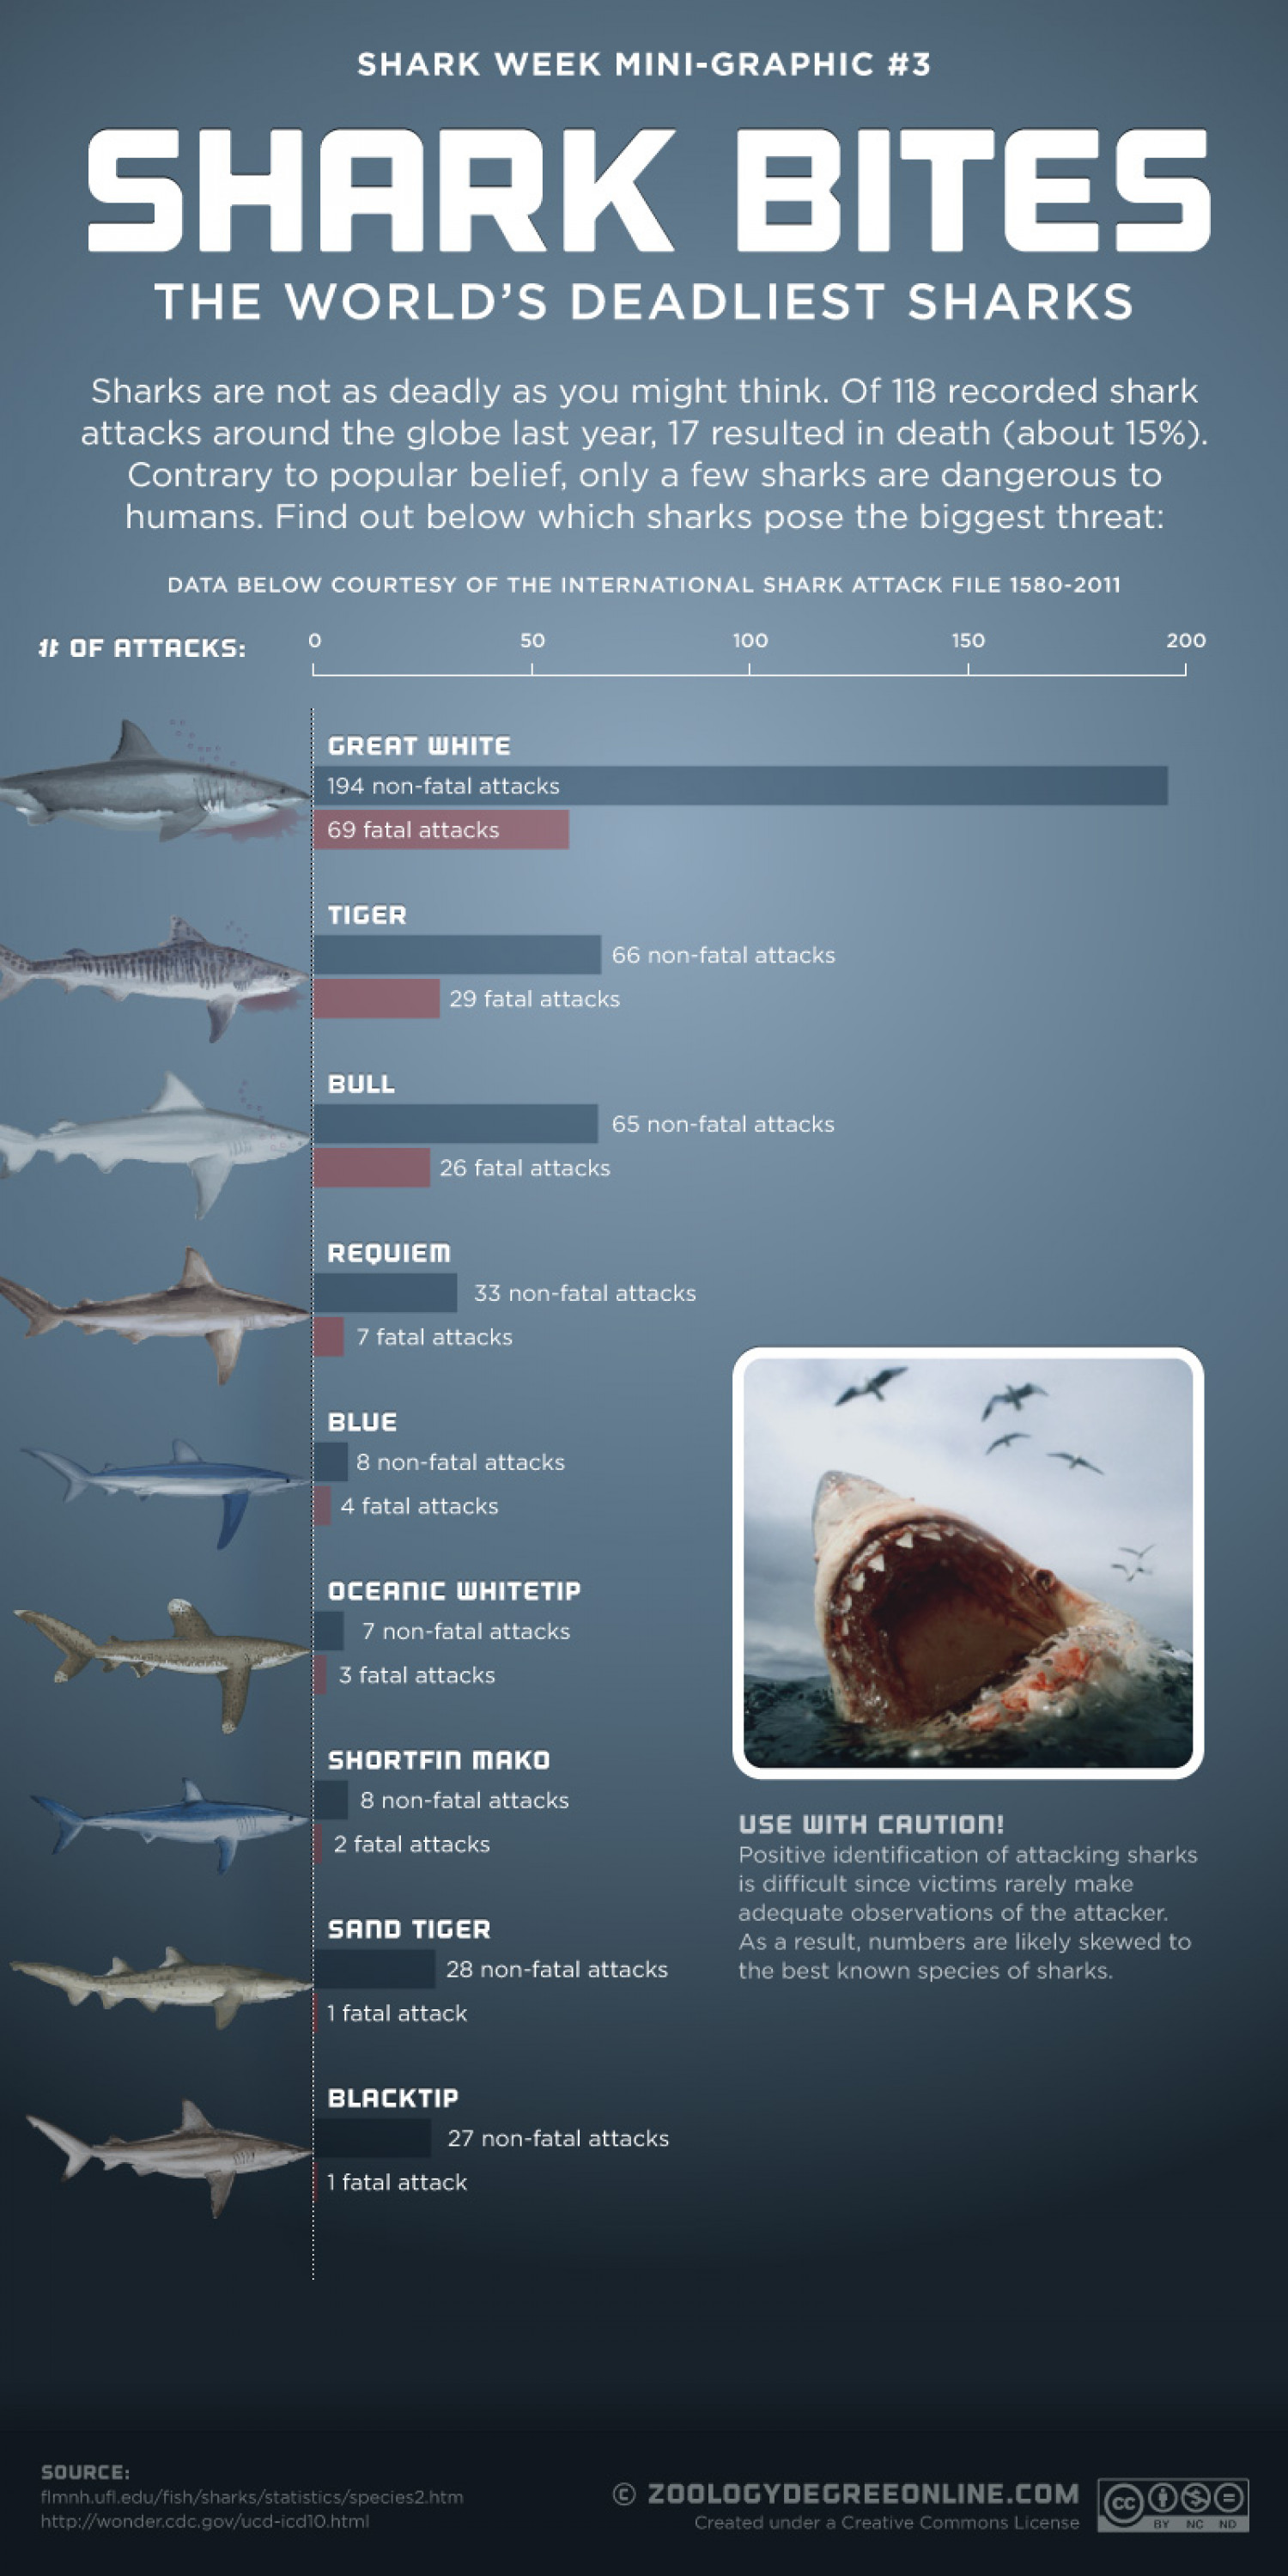 Shark Bites - The World's Deadliest Sharks Infographic